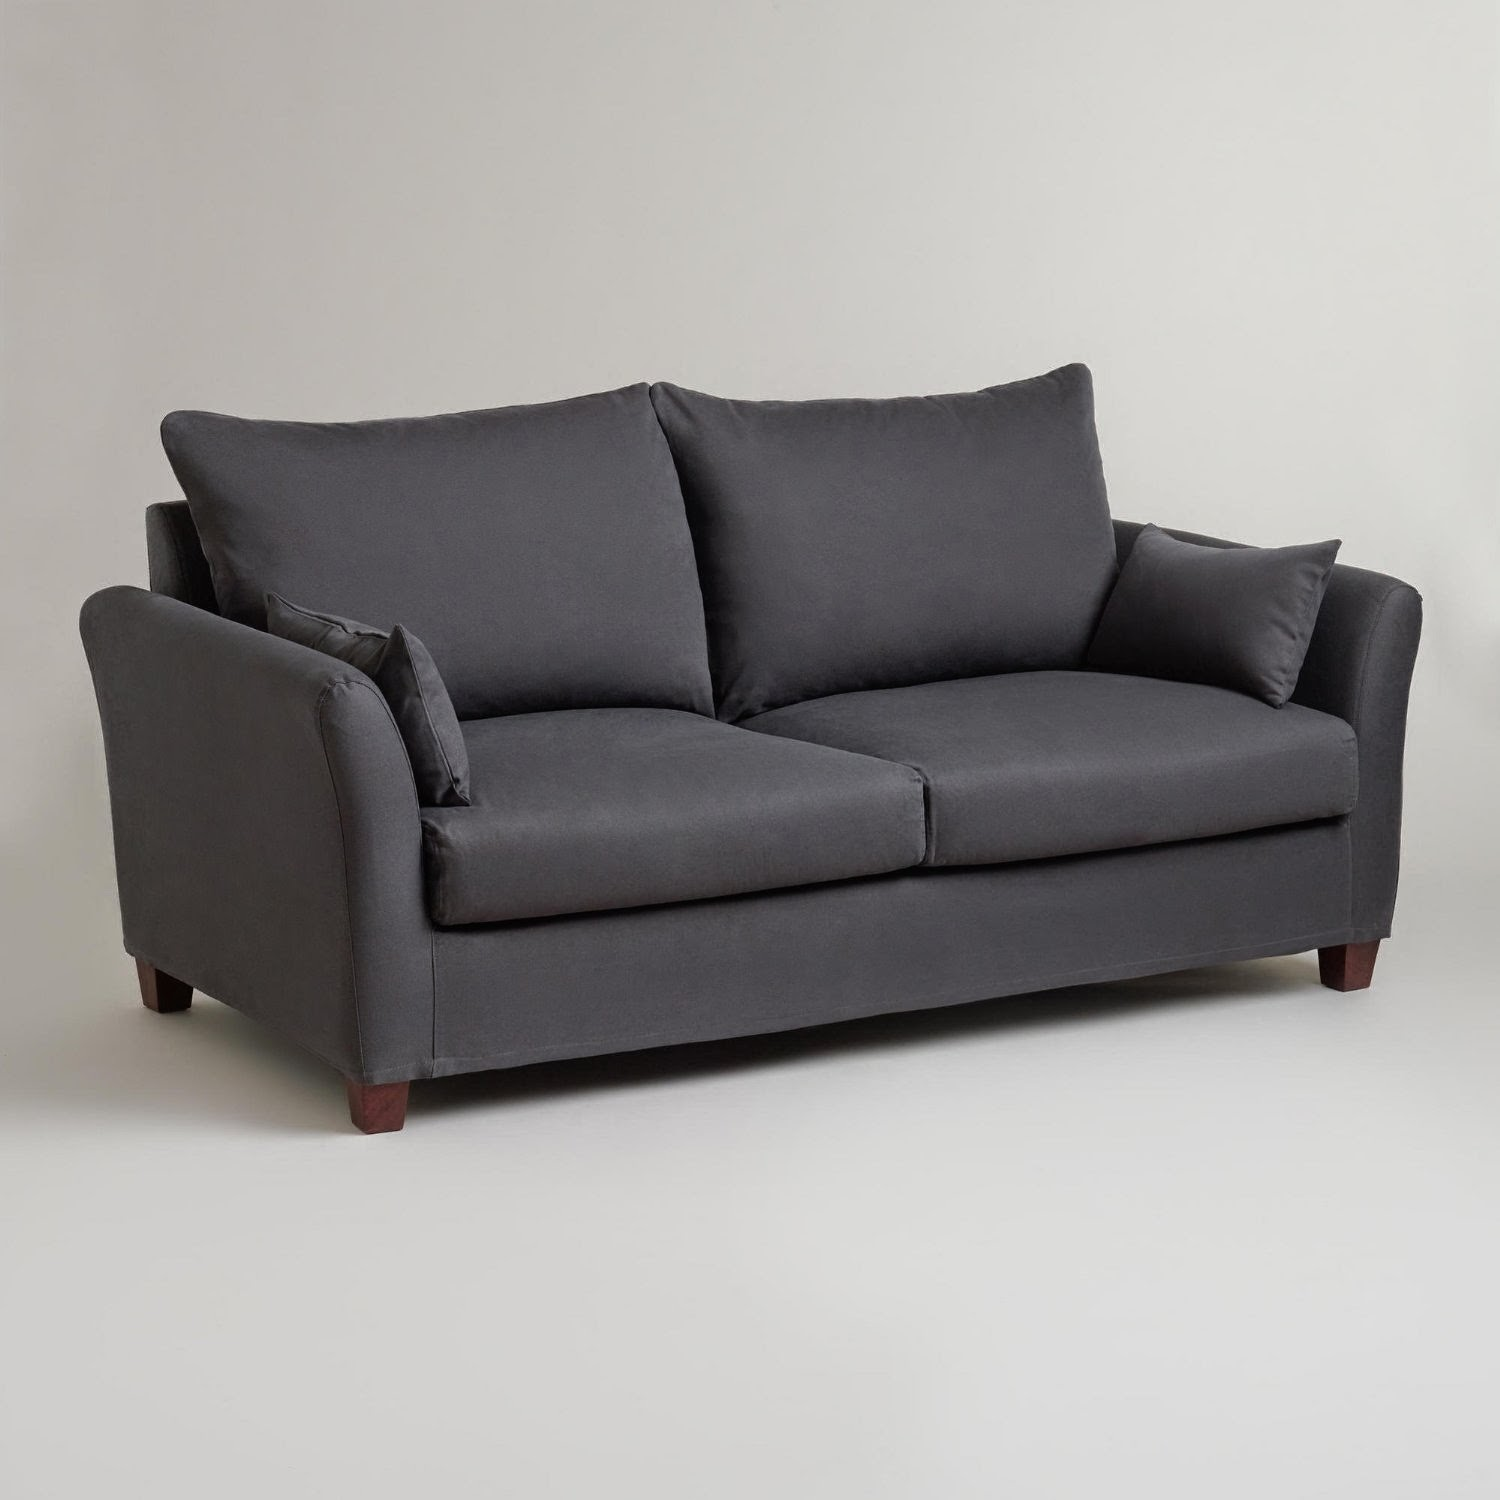 sectional sofa with ottoman main street charcoal charcoal grey couch